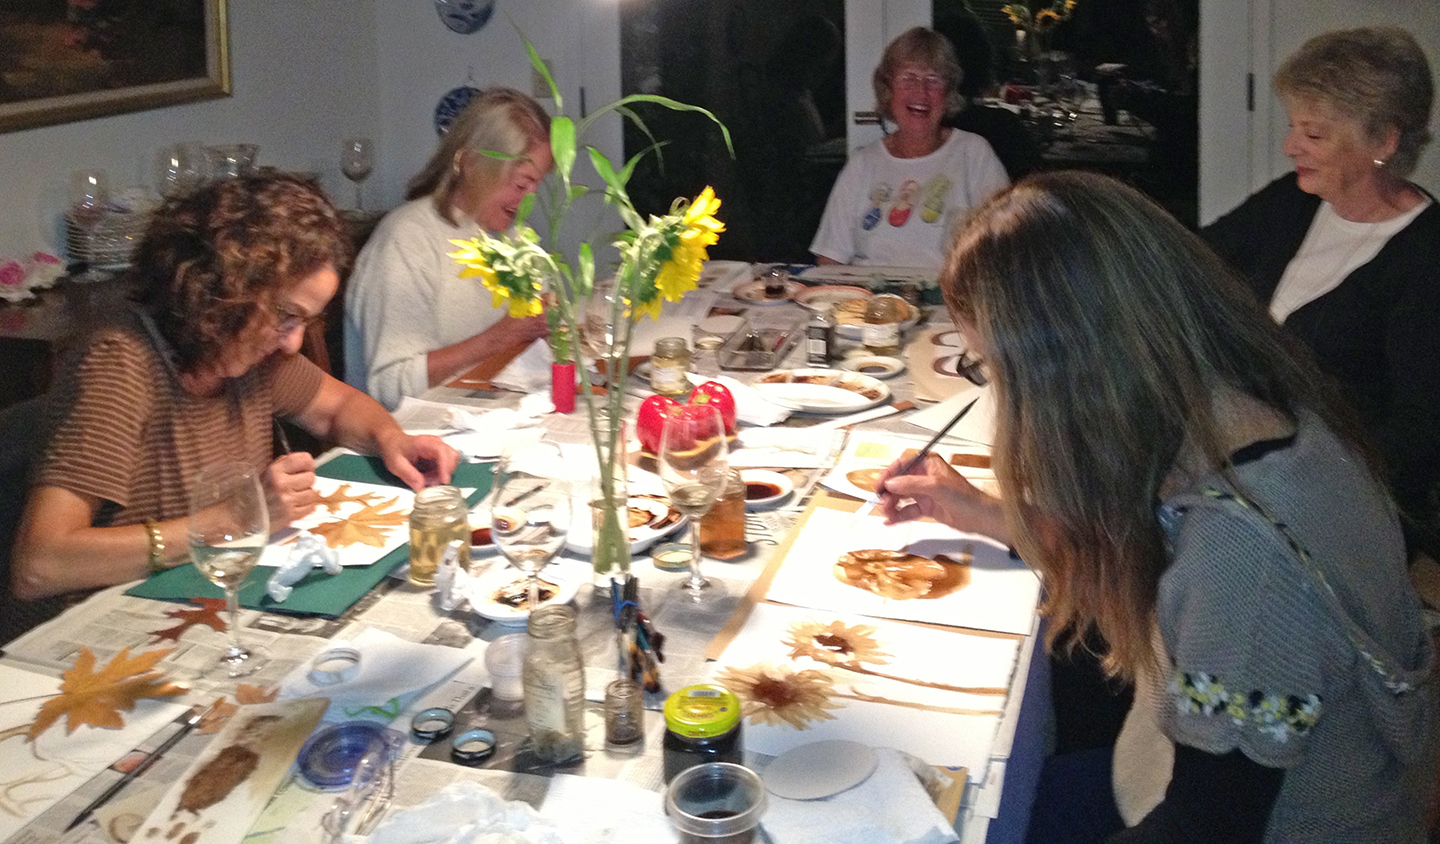 House Coffee  painting workshop in the home of  Eileen Ormiston  was fun and inspirational.